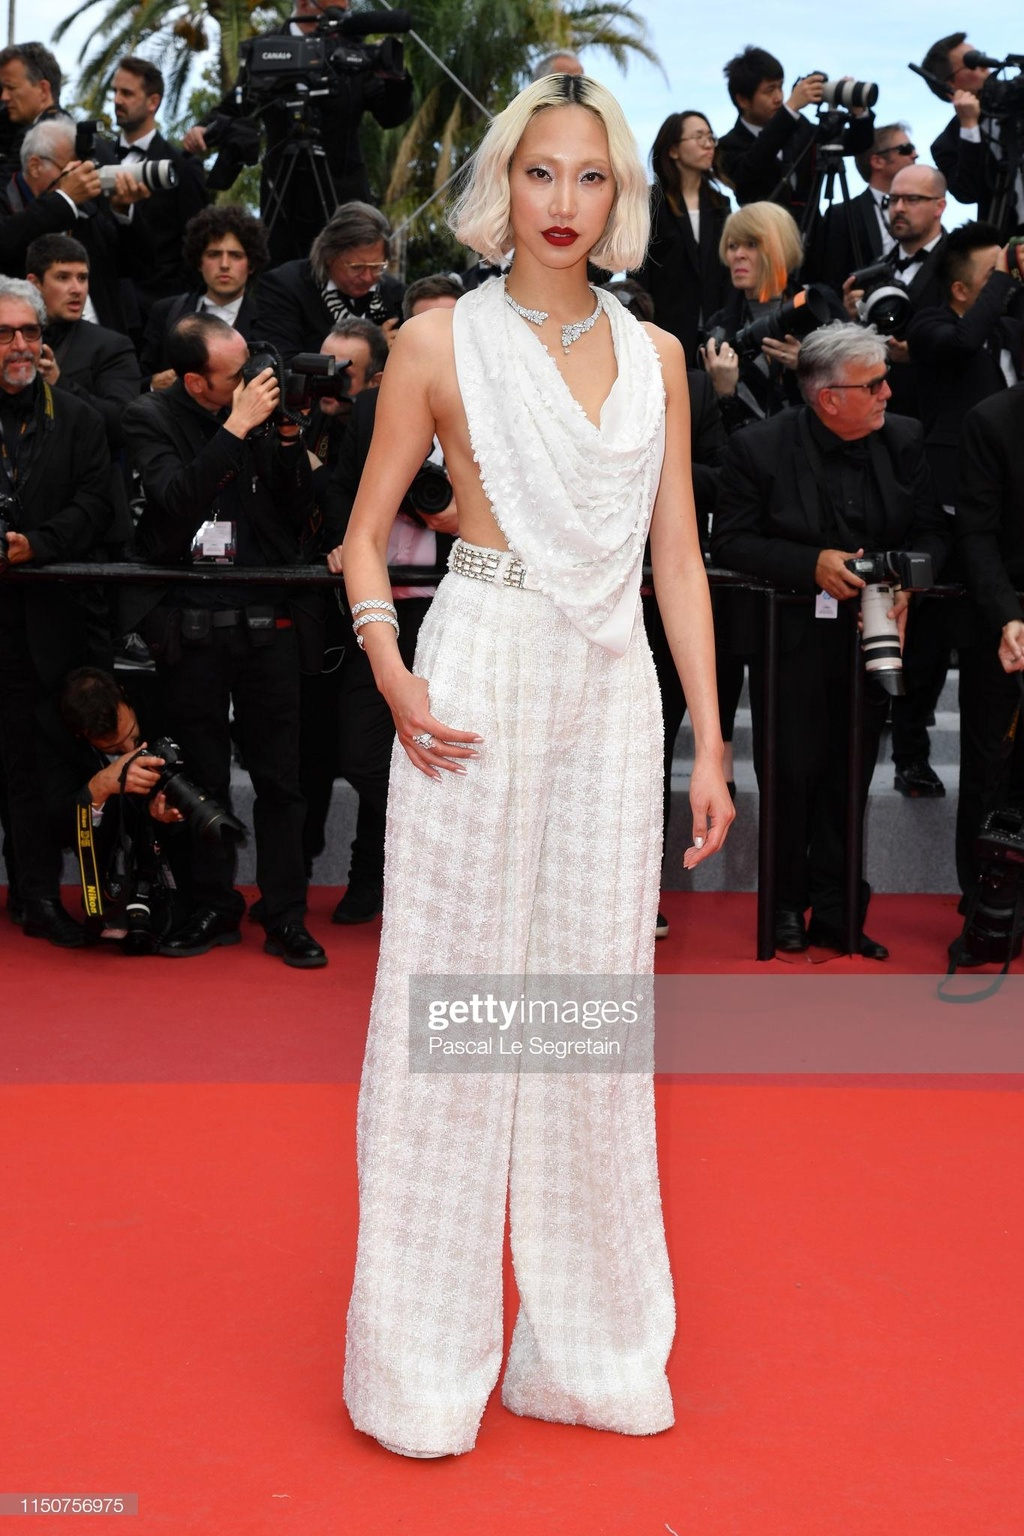 Lien hoan phim Cannes 2019 anh 12